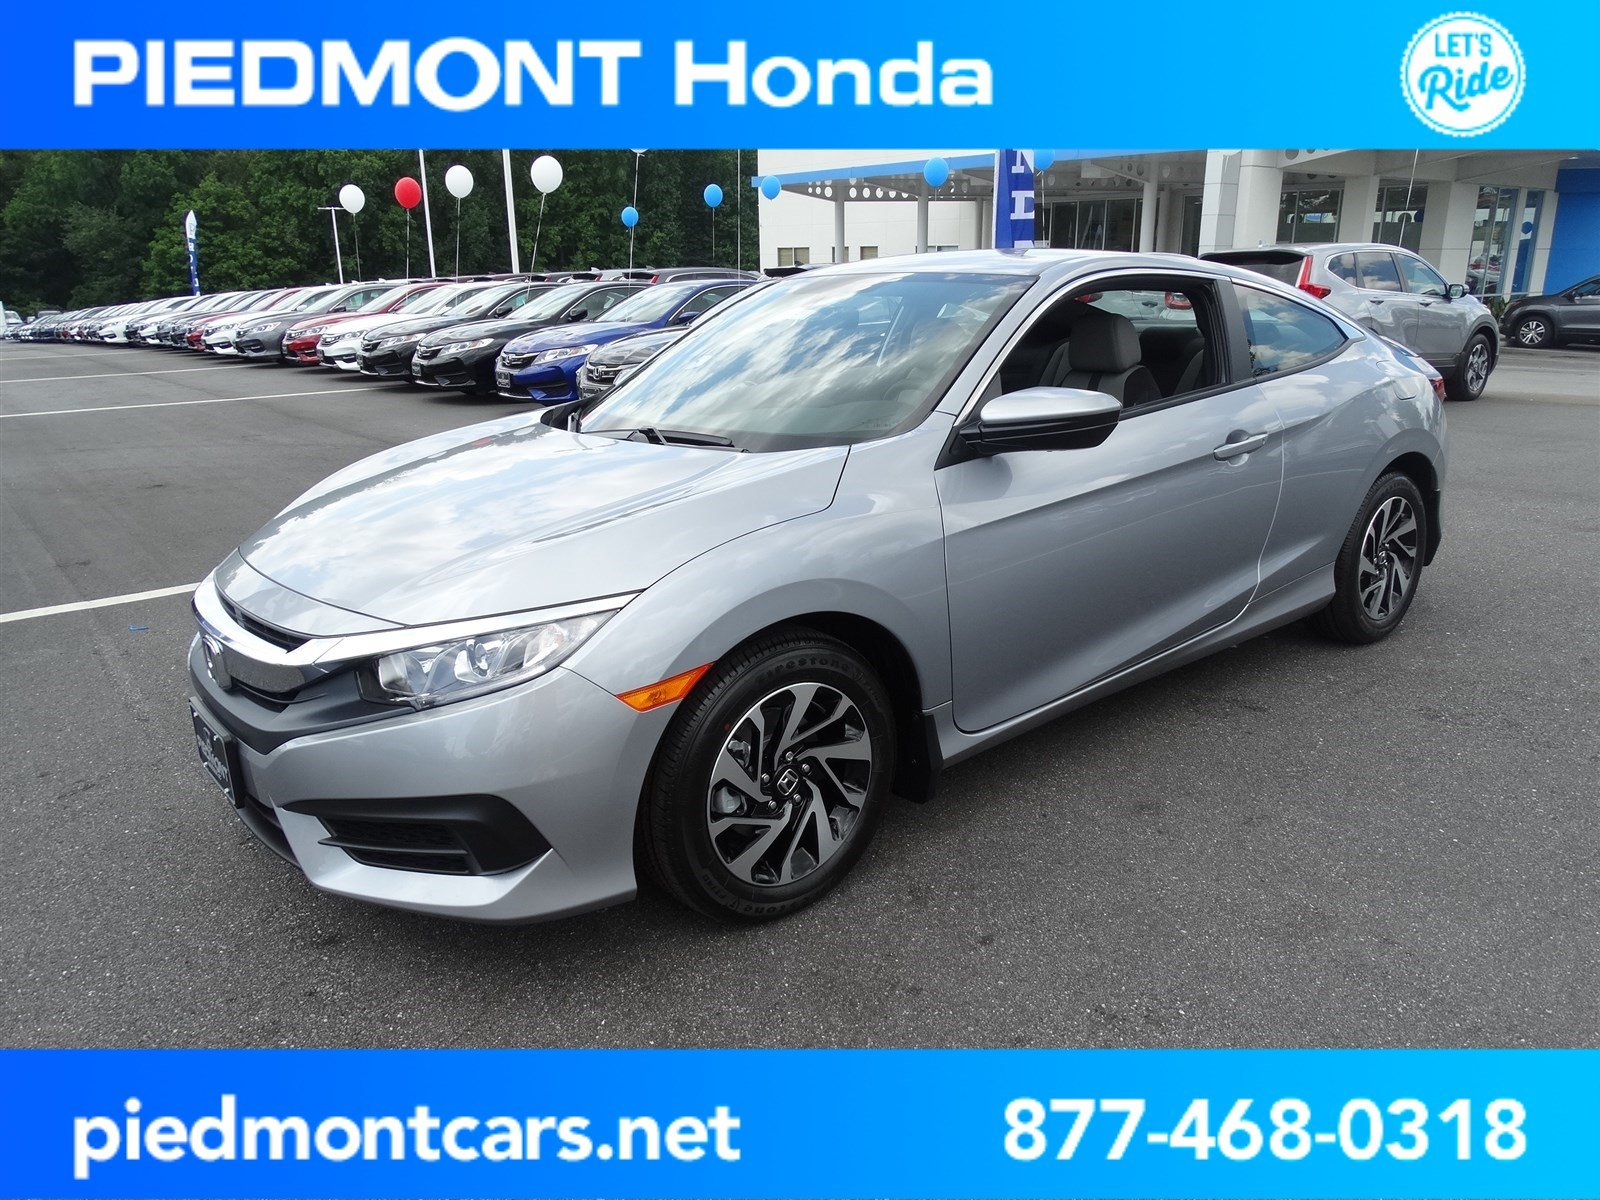 Captivating New 2017 Honda Civic Coupe LX